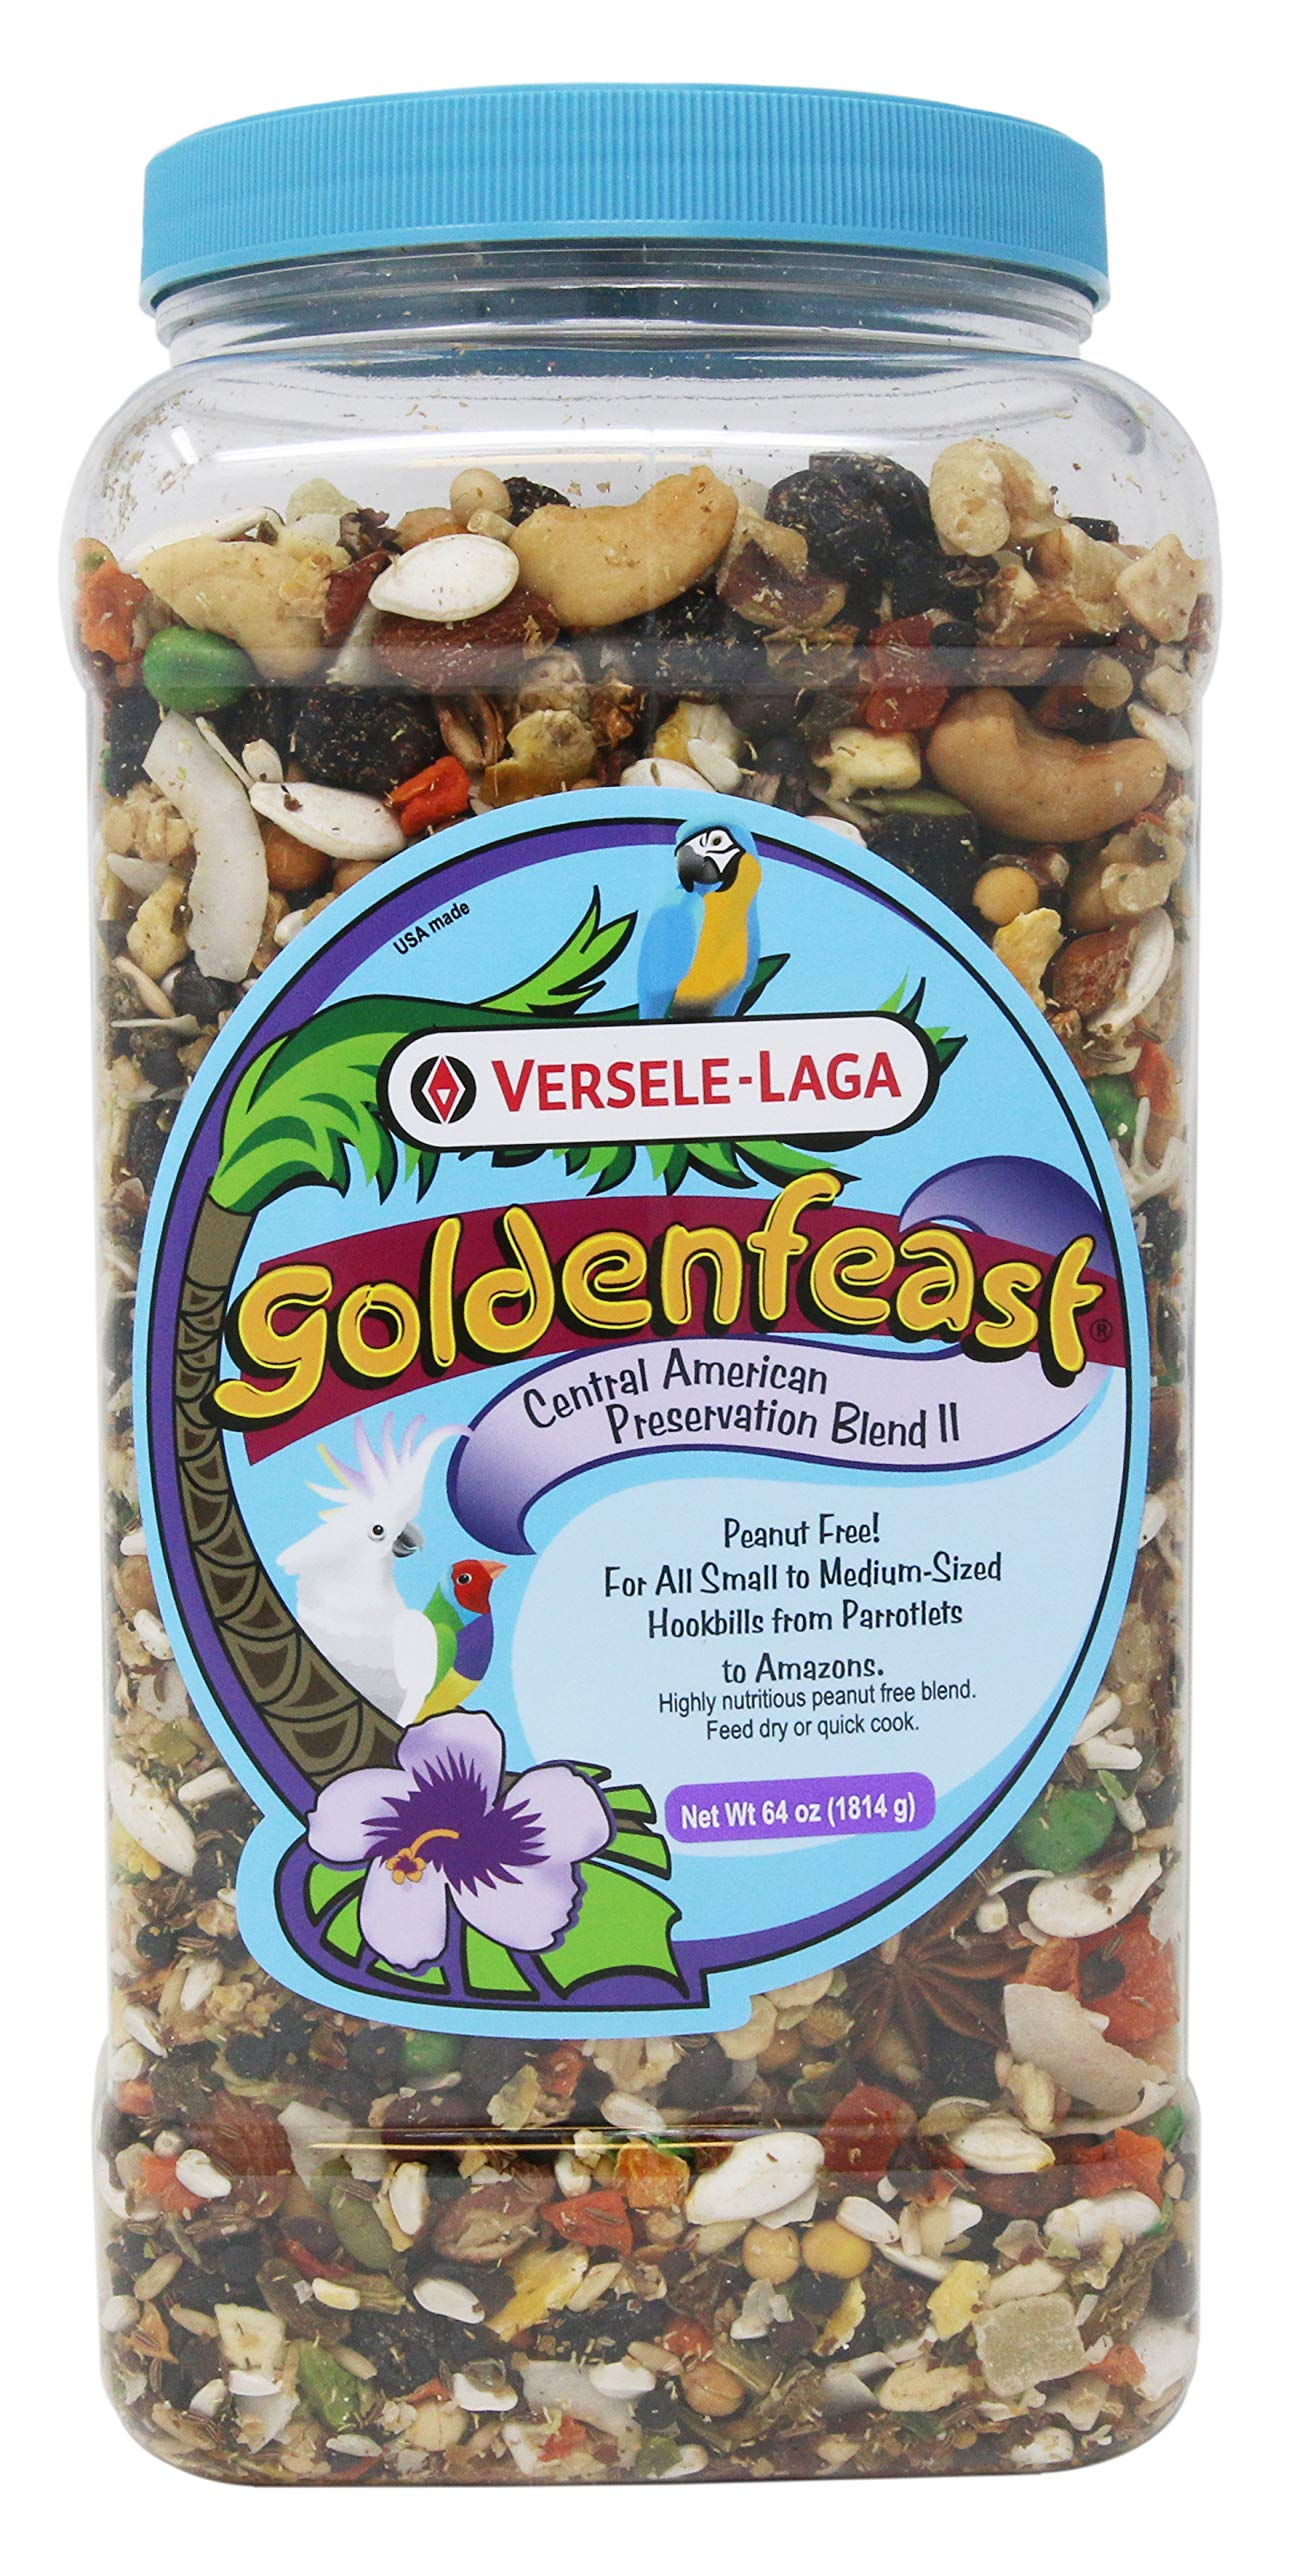 Goldenfeast Central American Preservation Blend II 64 Oz by Goldenfeast